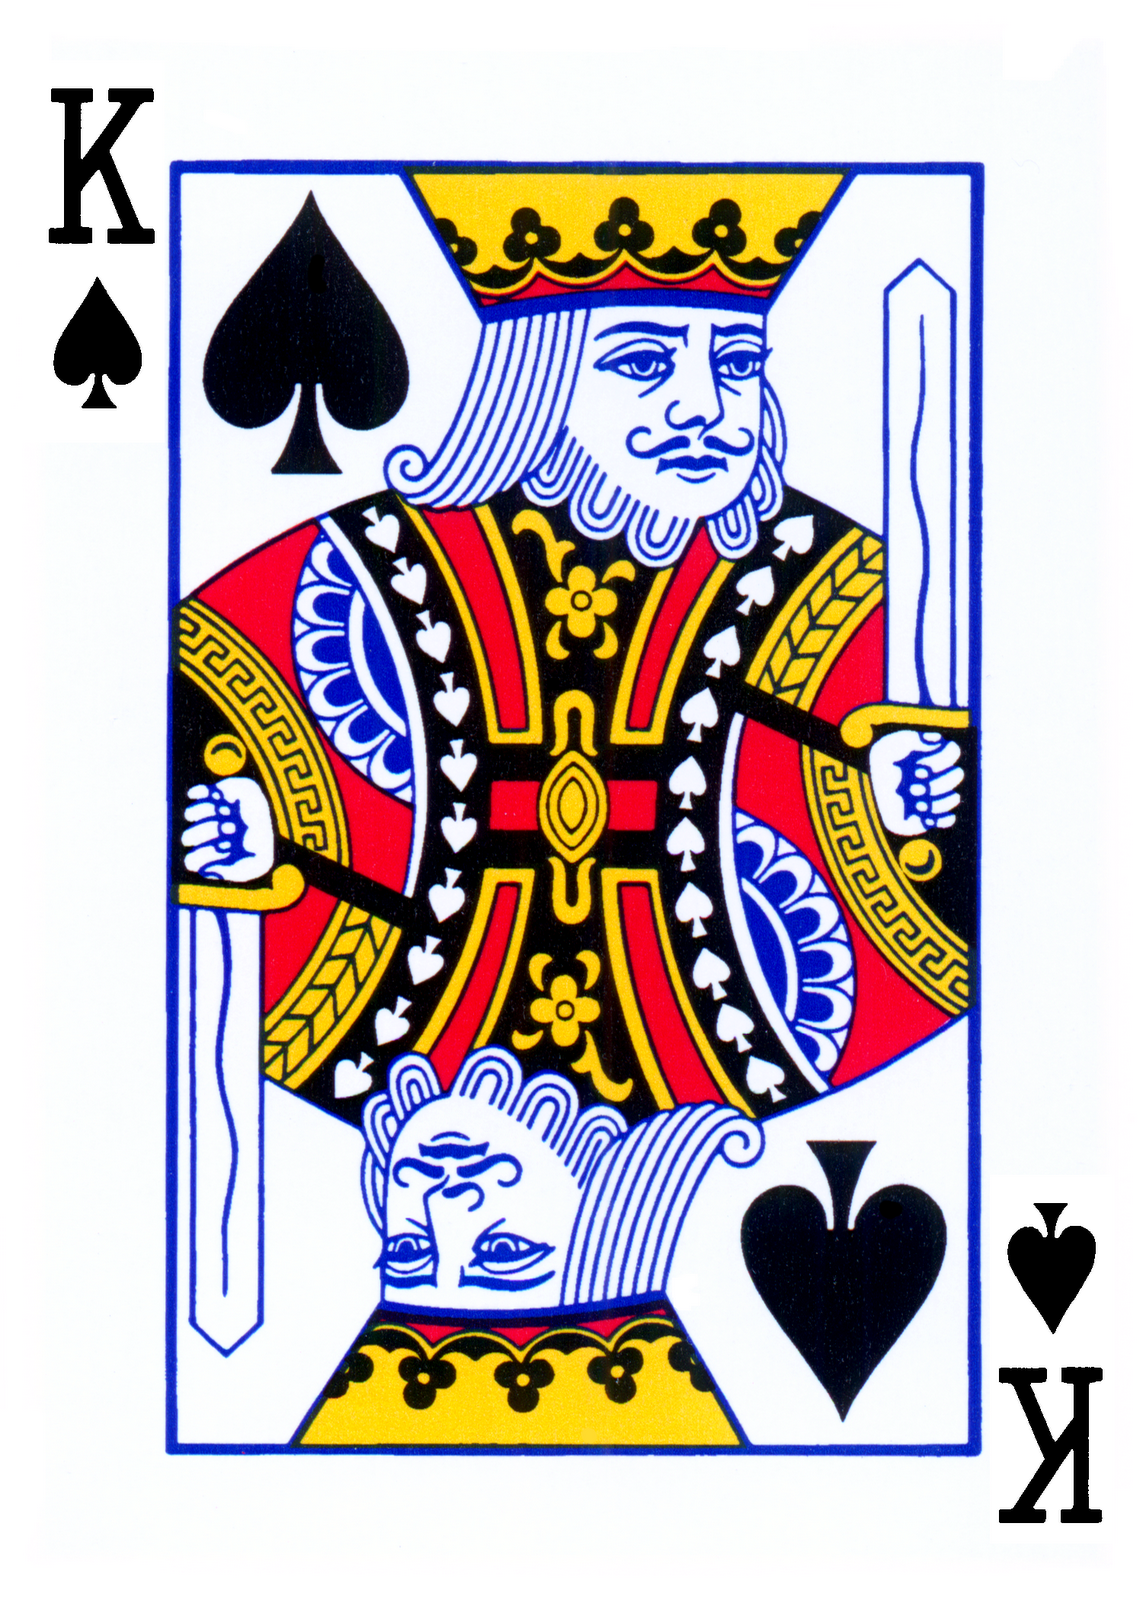 Queen Playing Card didn't buy them and I DON'T USE THEM